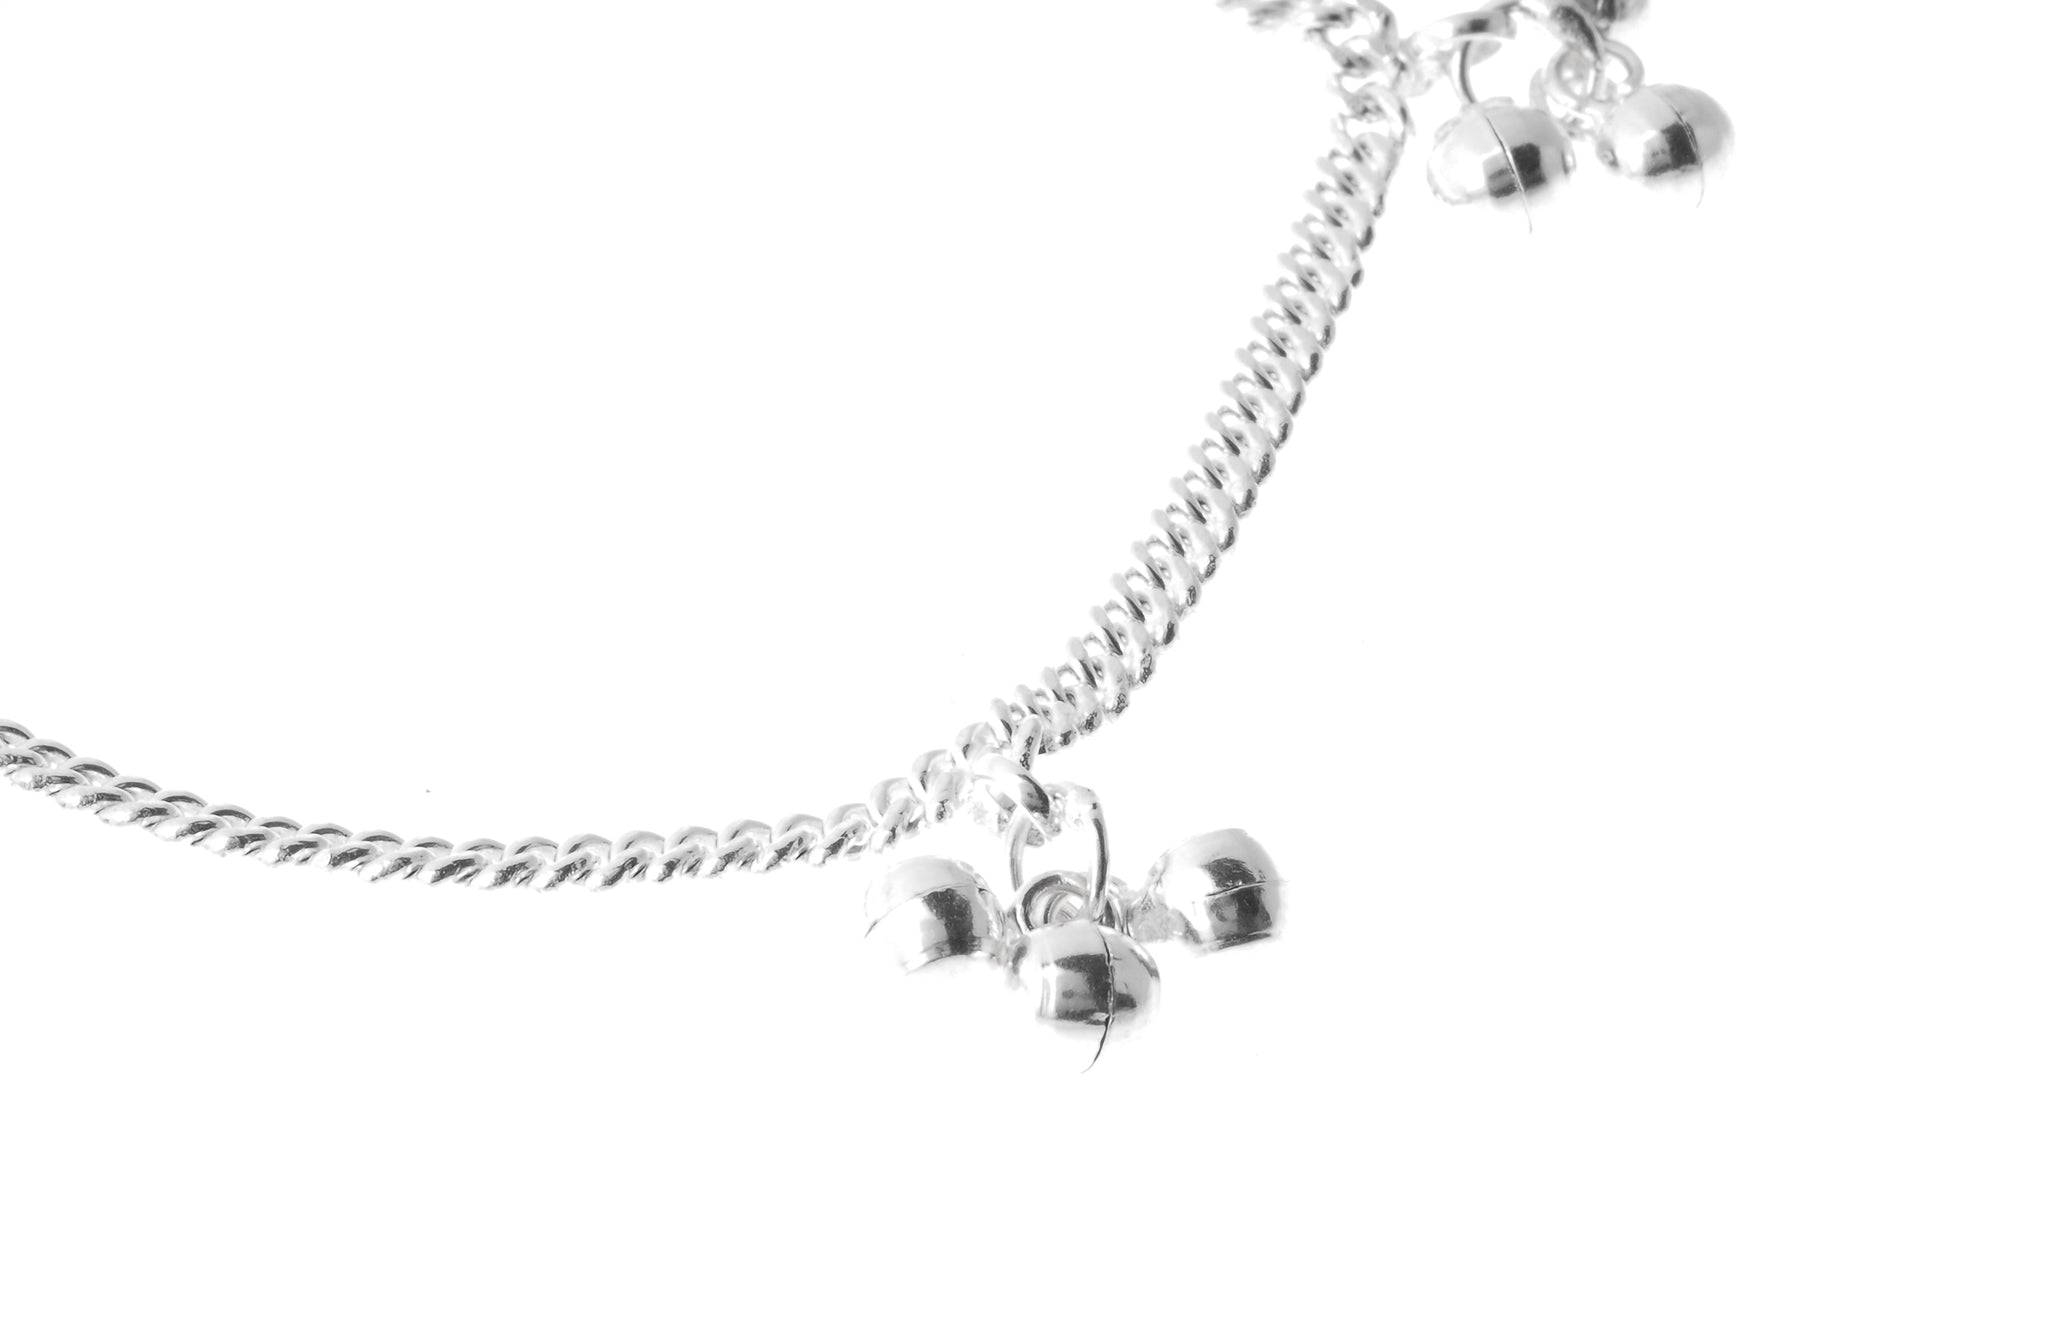 Sterling Silver Anklets with Ghughri Bell Charms for Children (A-7152) - Close Up_1